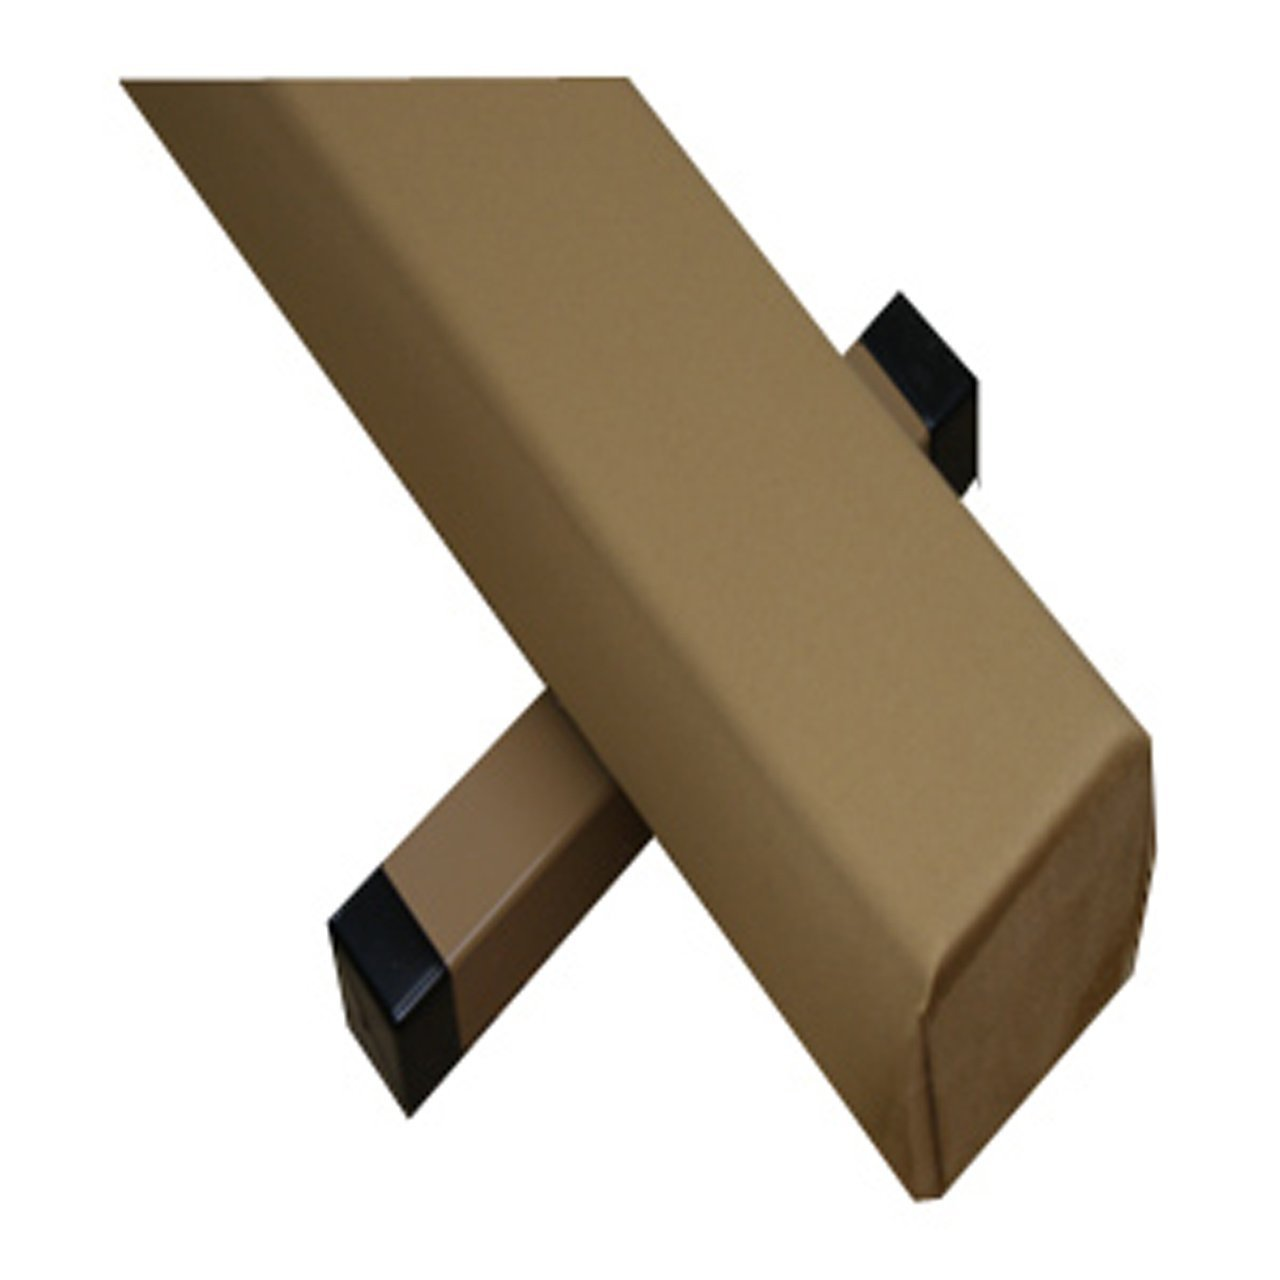 The Beam Store Tan Suede Balance Beam and Blue Mat Combo